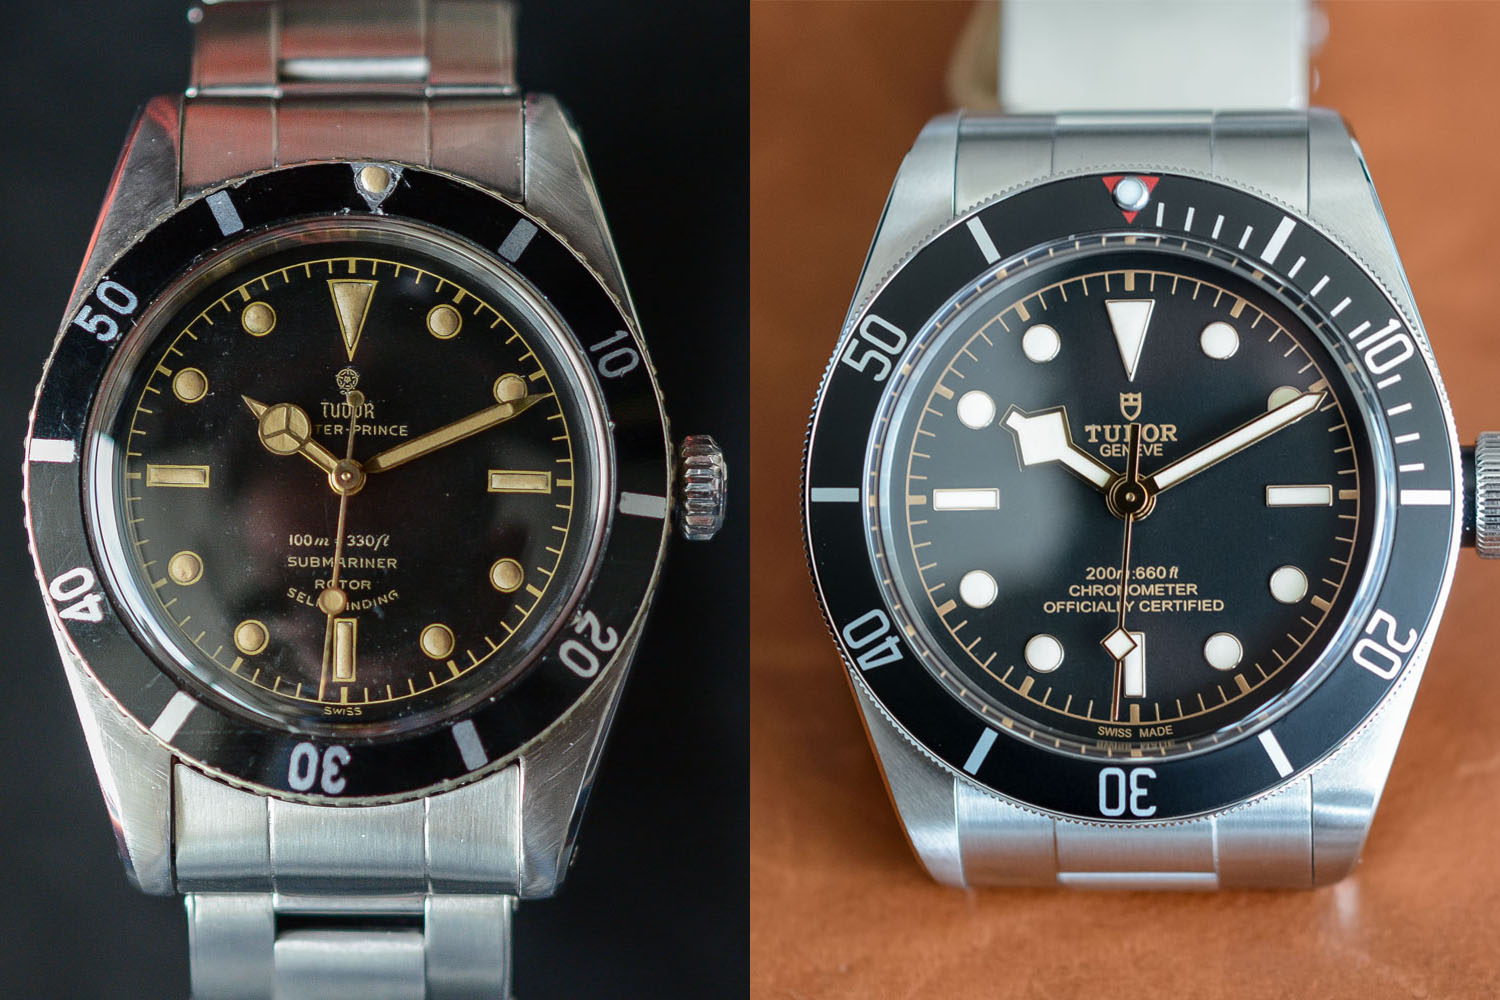 Tudor and its heritage - How vintage submariners inspired Tudor Black Bay